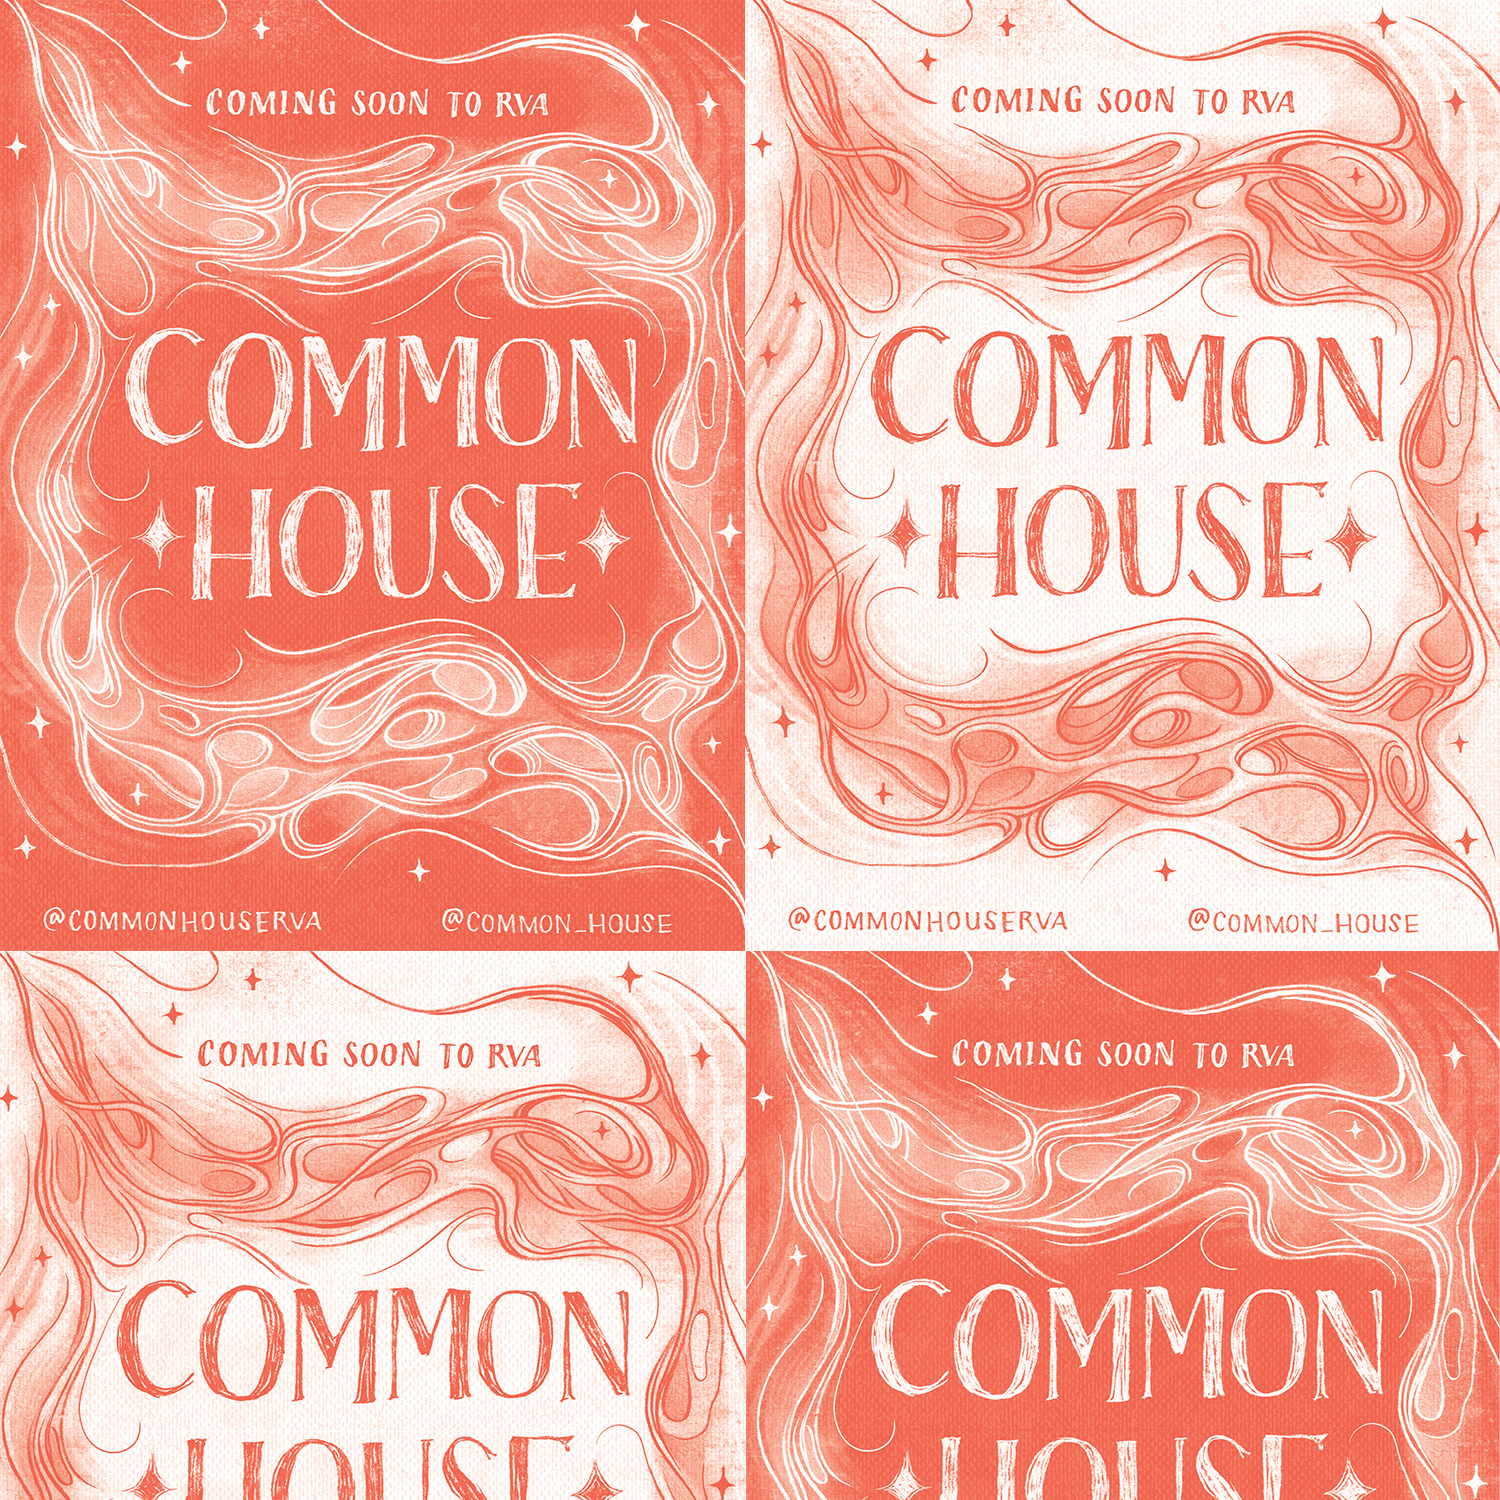 Common House Richmond